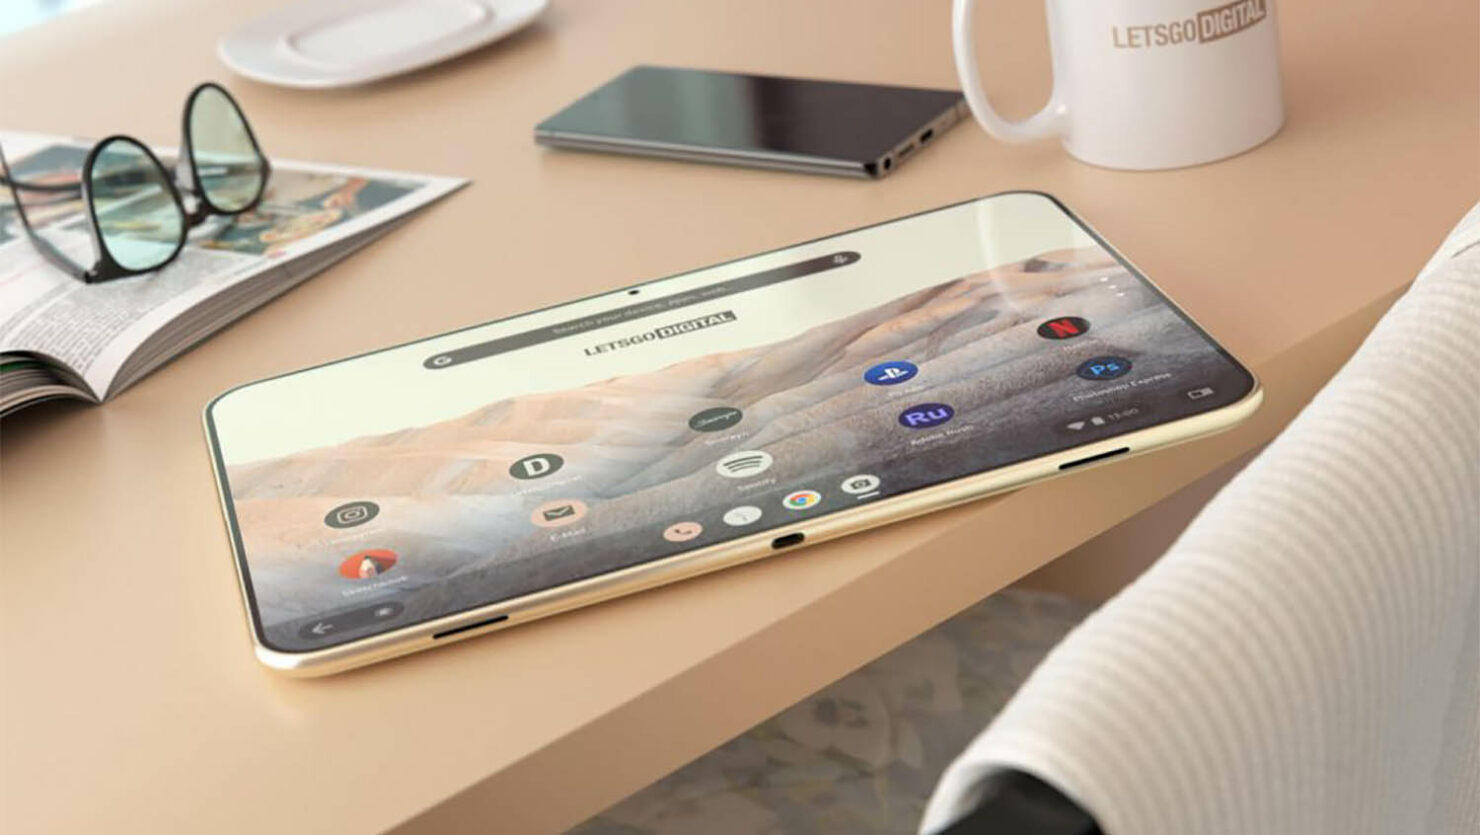 A Google Pixel Tablet With Rounded Corners, Futuristic Design, Depicted in New Renders Based on Recently Published Patent